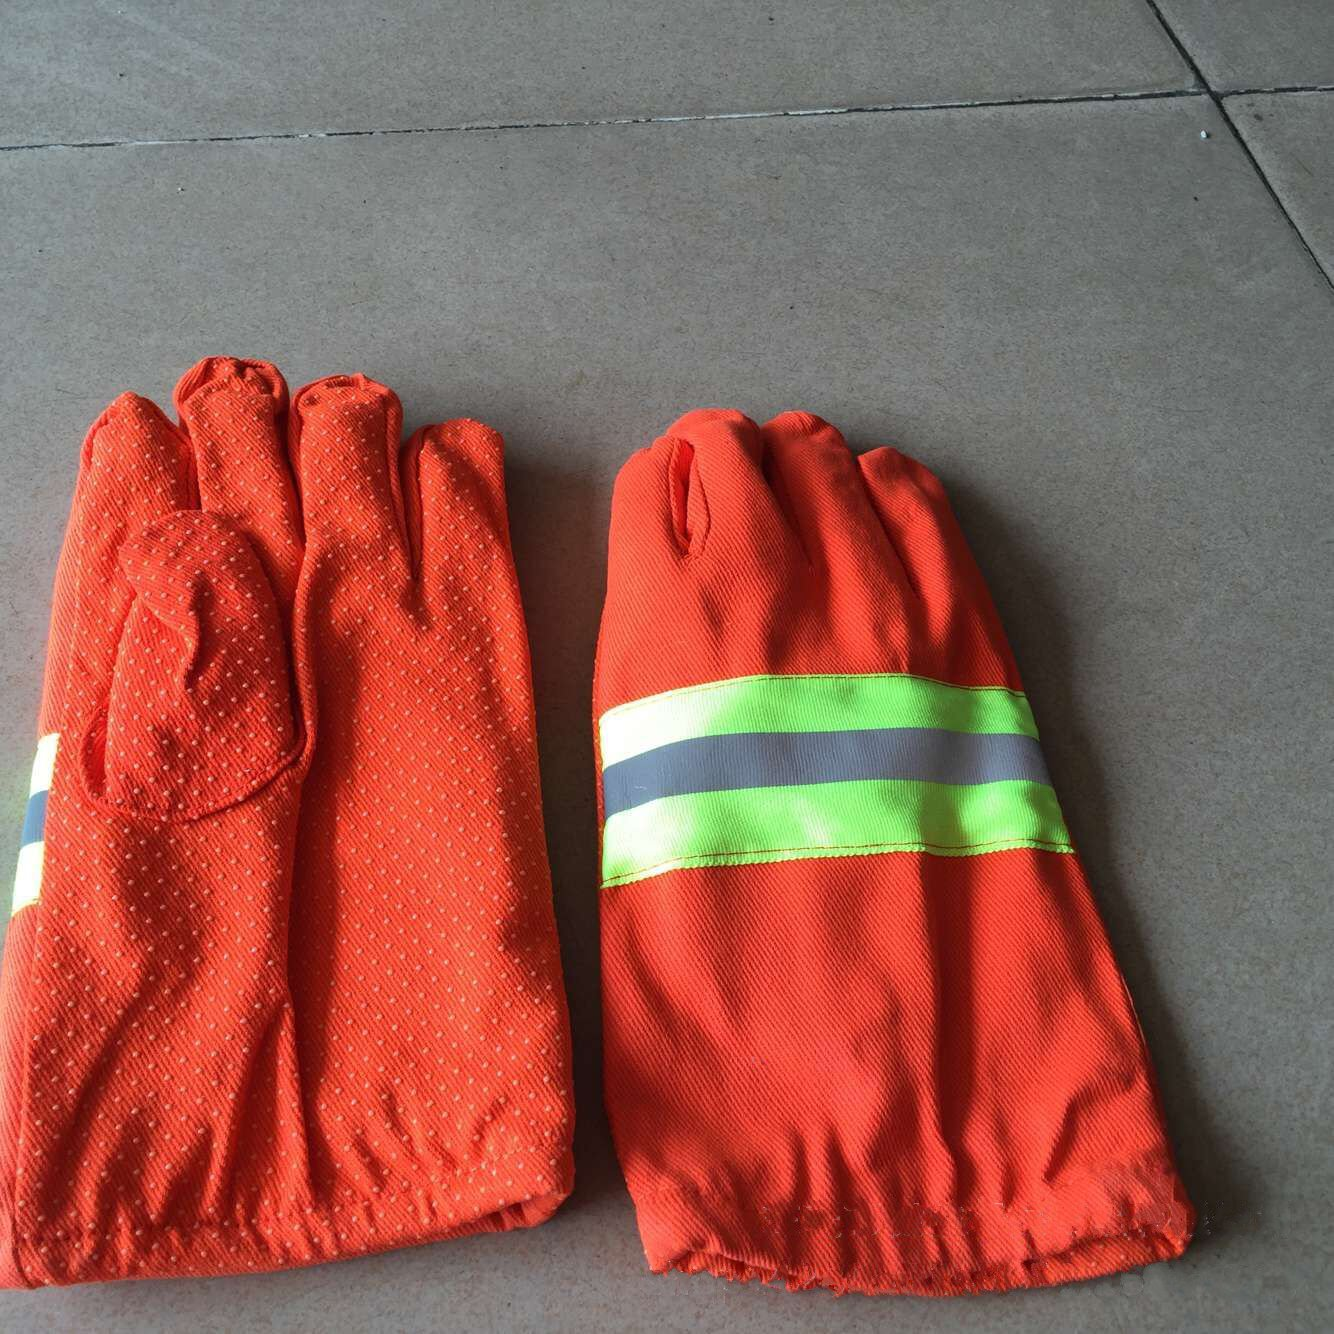 Fire protection fire protection gloves fire fighting equipment fire fighting equipment rescue gloves hand protective gloves